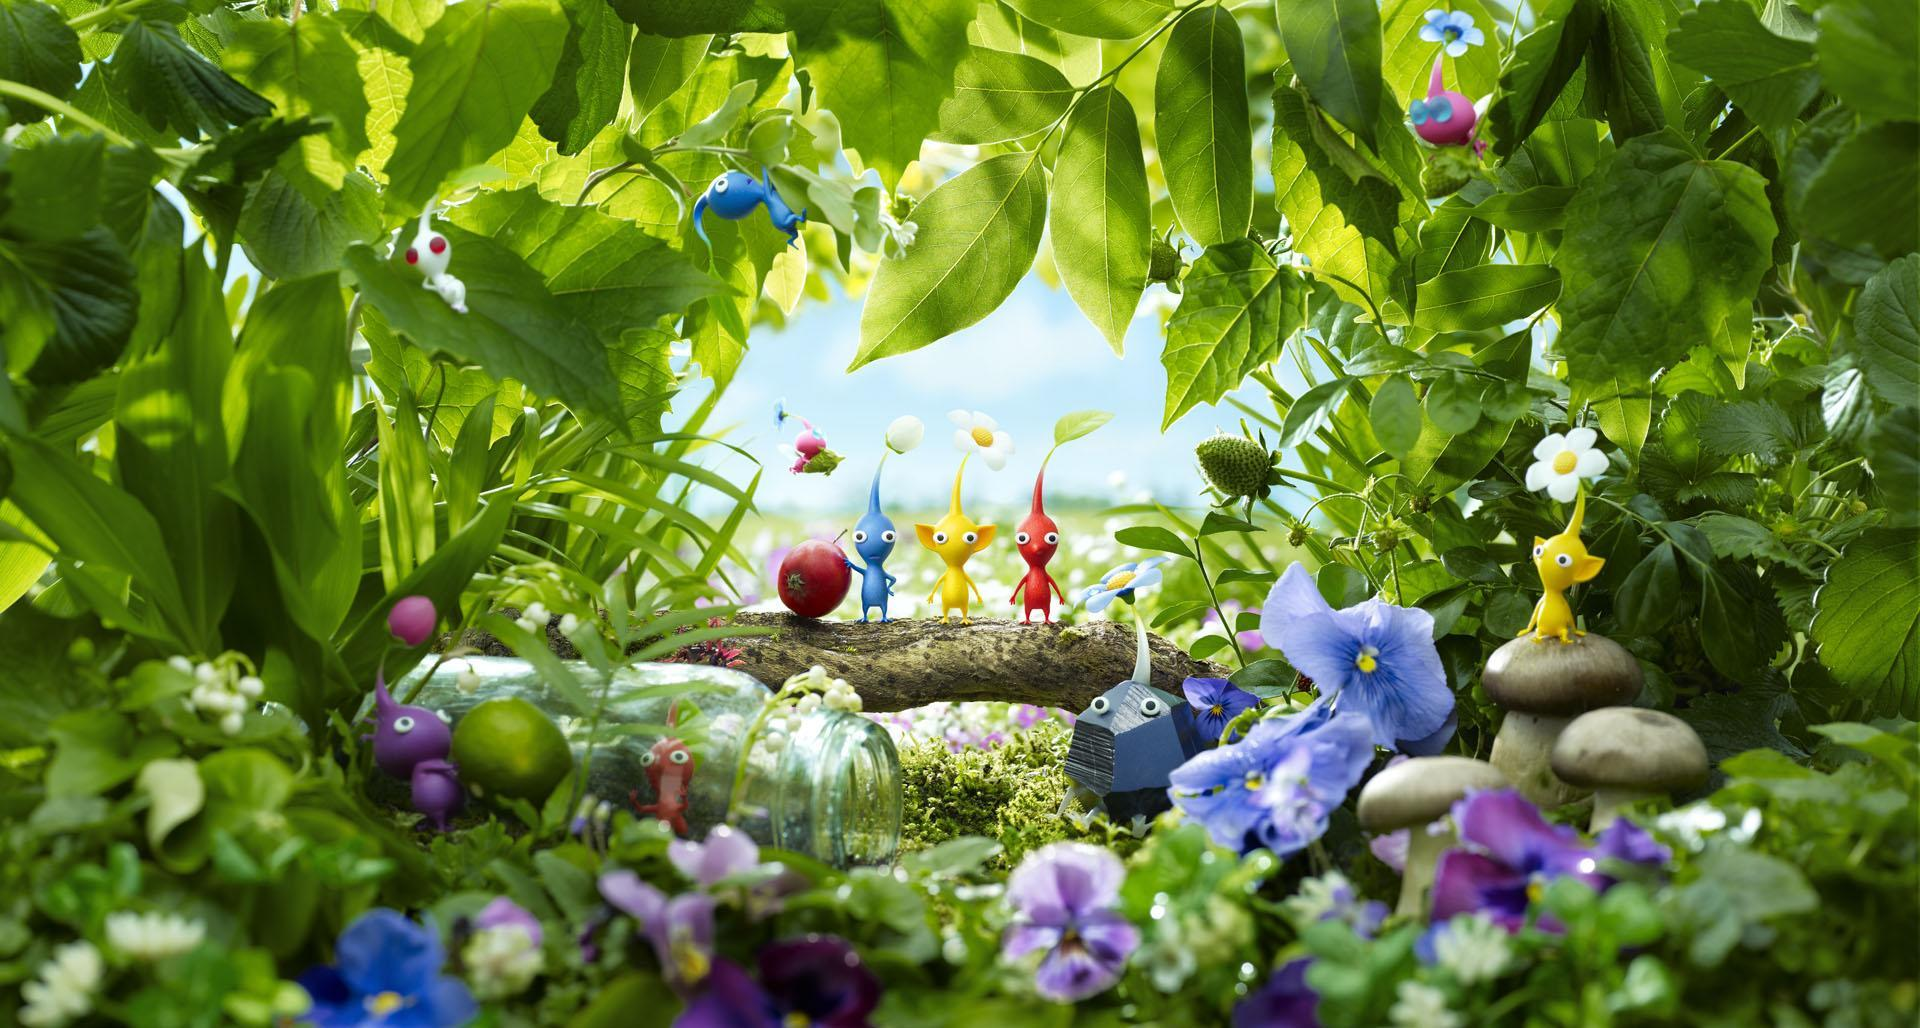 Pikmin Wallpaper for Android   APK Download 1920x1028